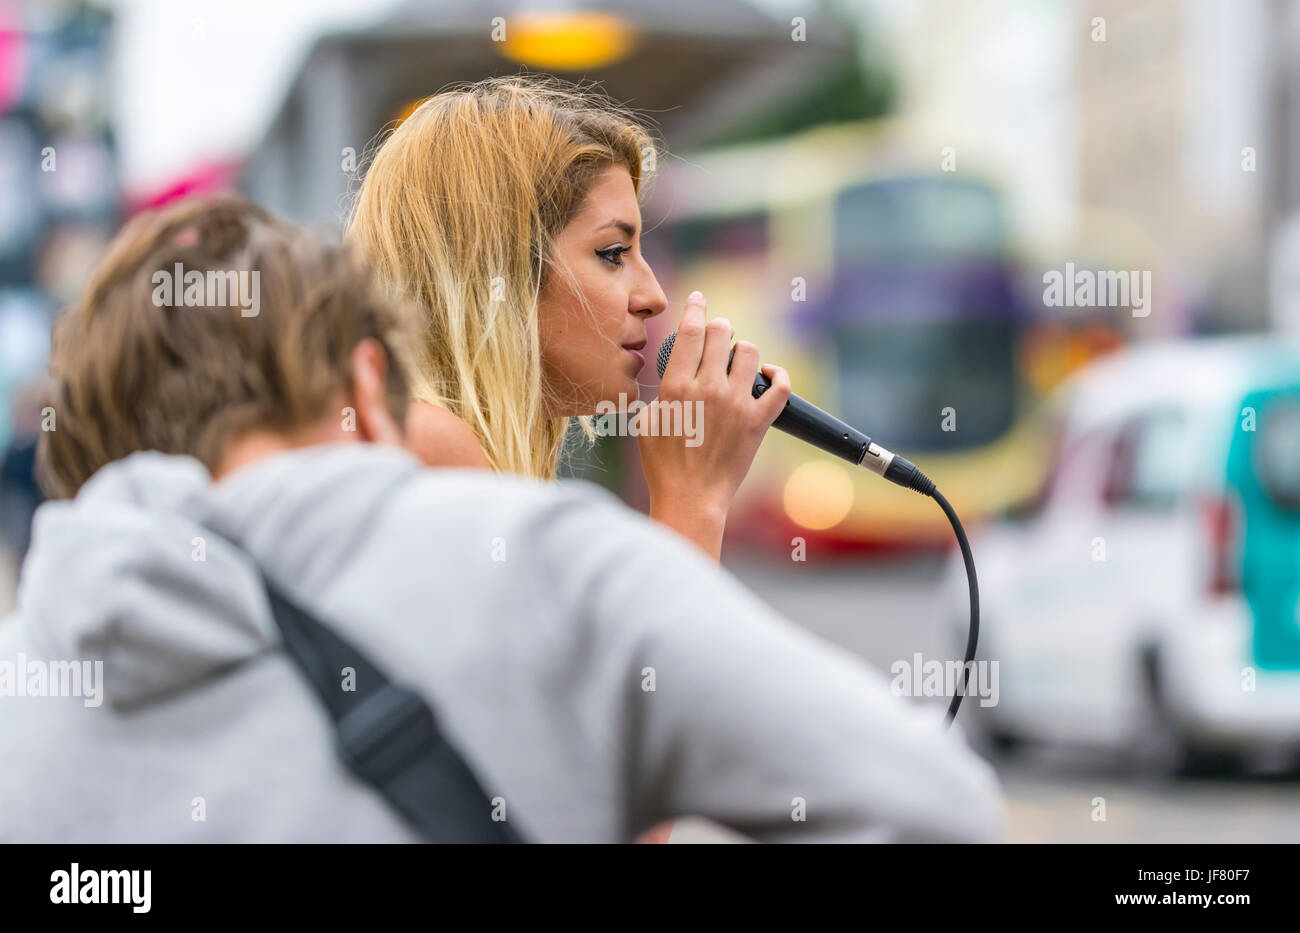 Woman singing on the street with a guitarist. Busking. Street musician. Street musicians. Female busker. - Stock Image